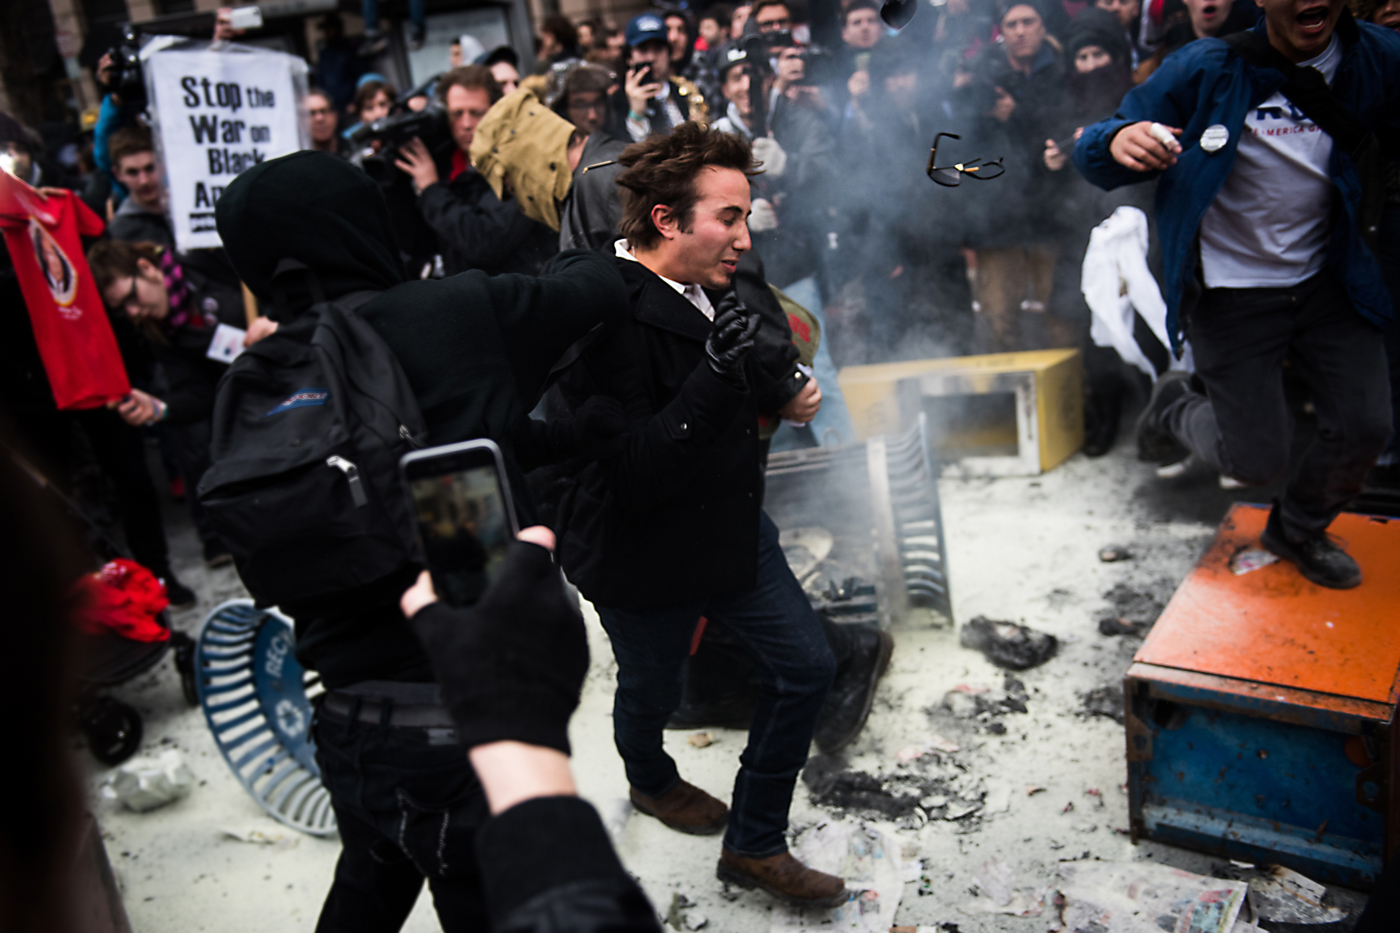 A supporter of President Donald Trump (center) is punched in the face by anarchist protestors after having his hat stolen after Trump's inauguration as the 45th President of the United States in Washington, D.C., on January 20, 2017.